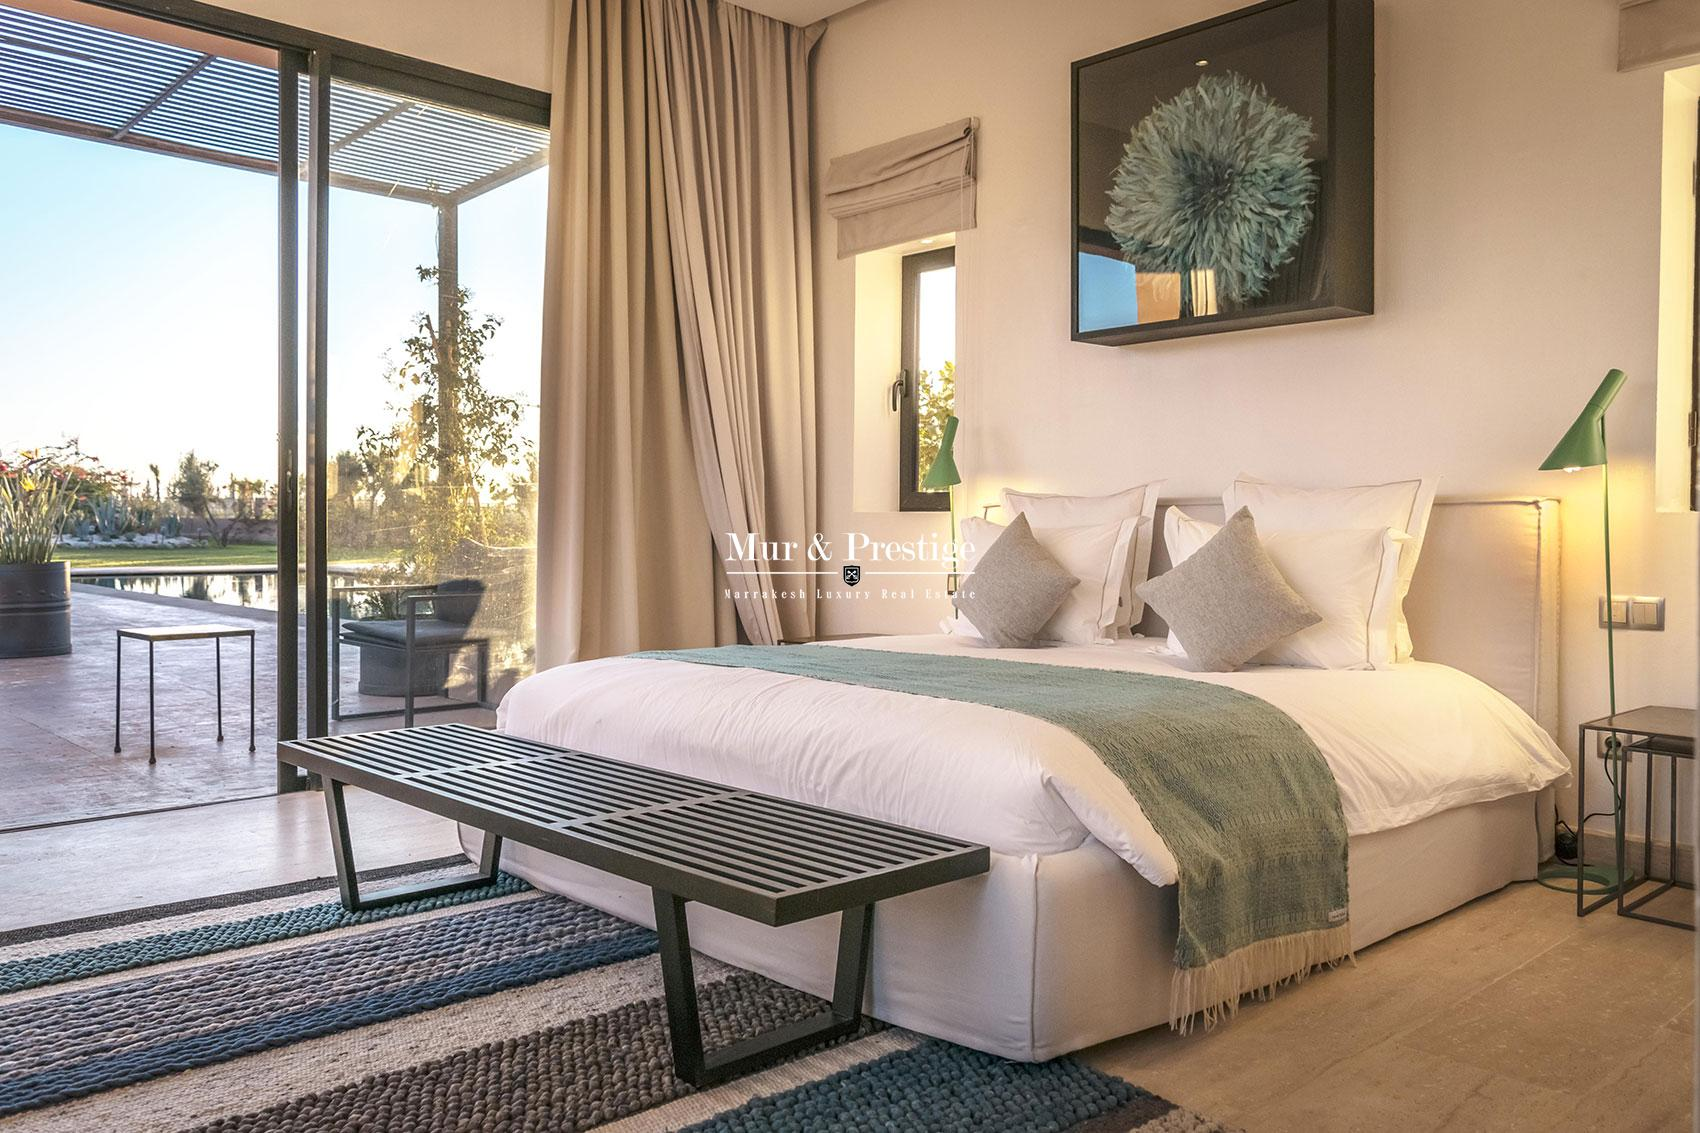 Luxueuse villa en vente face a l'atlas a Marrakech